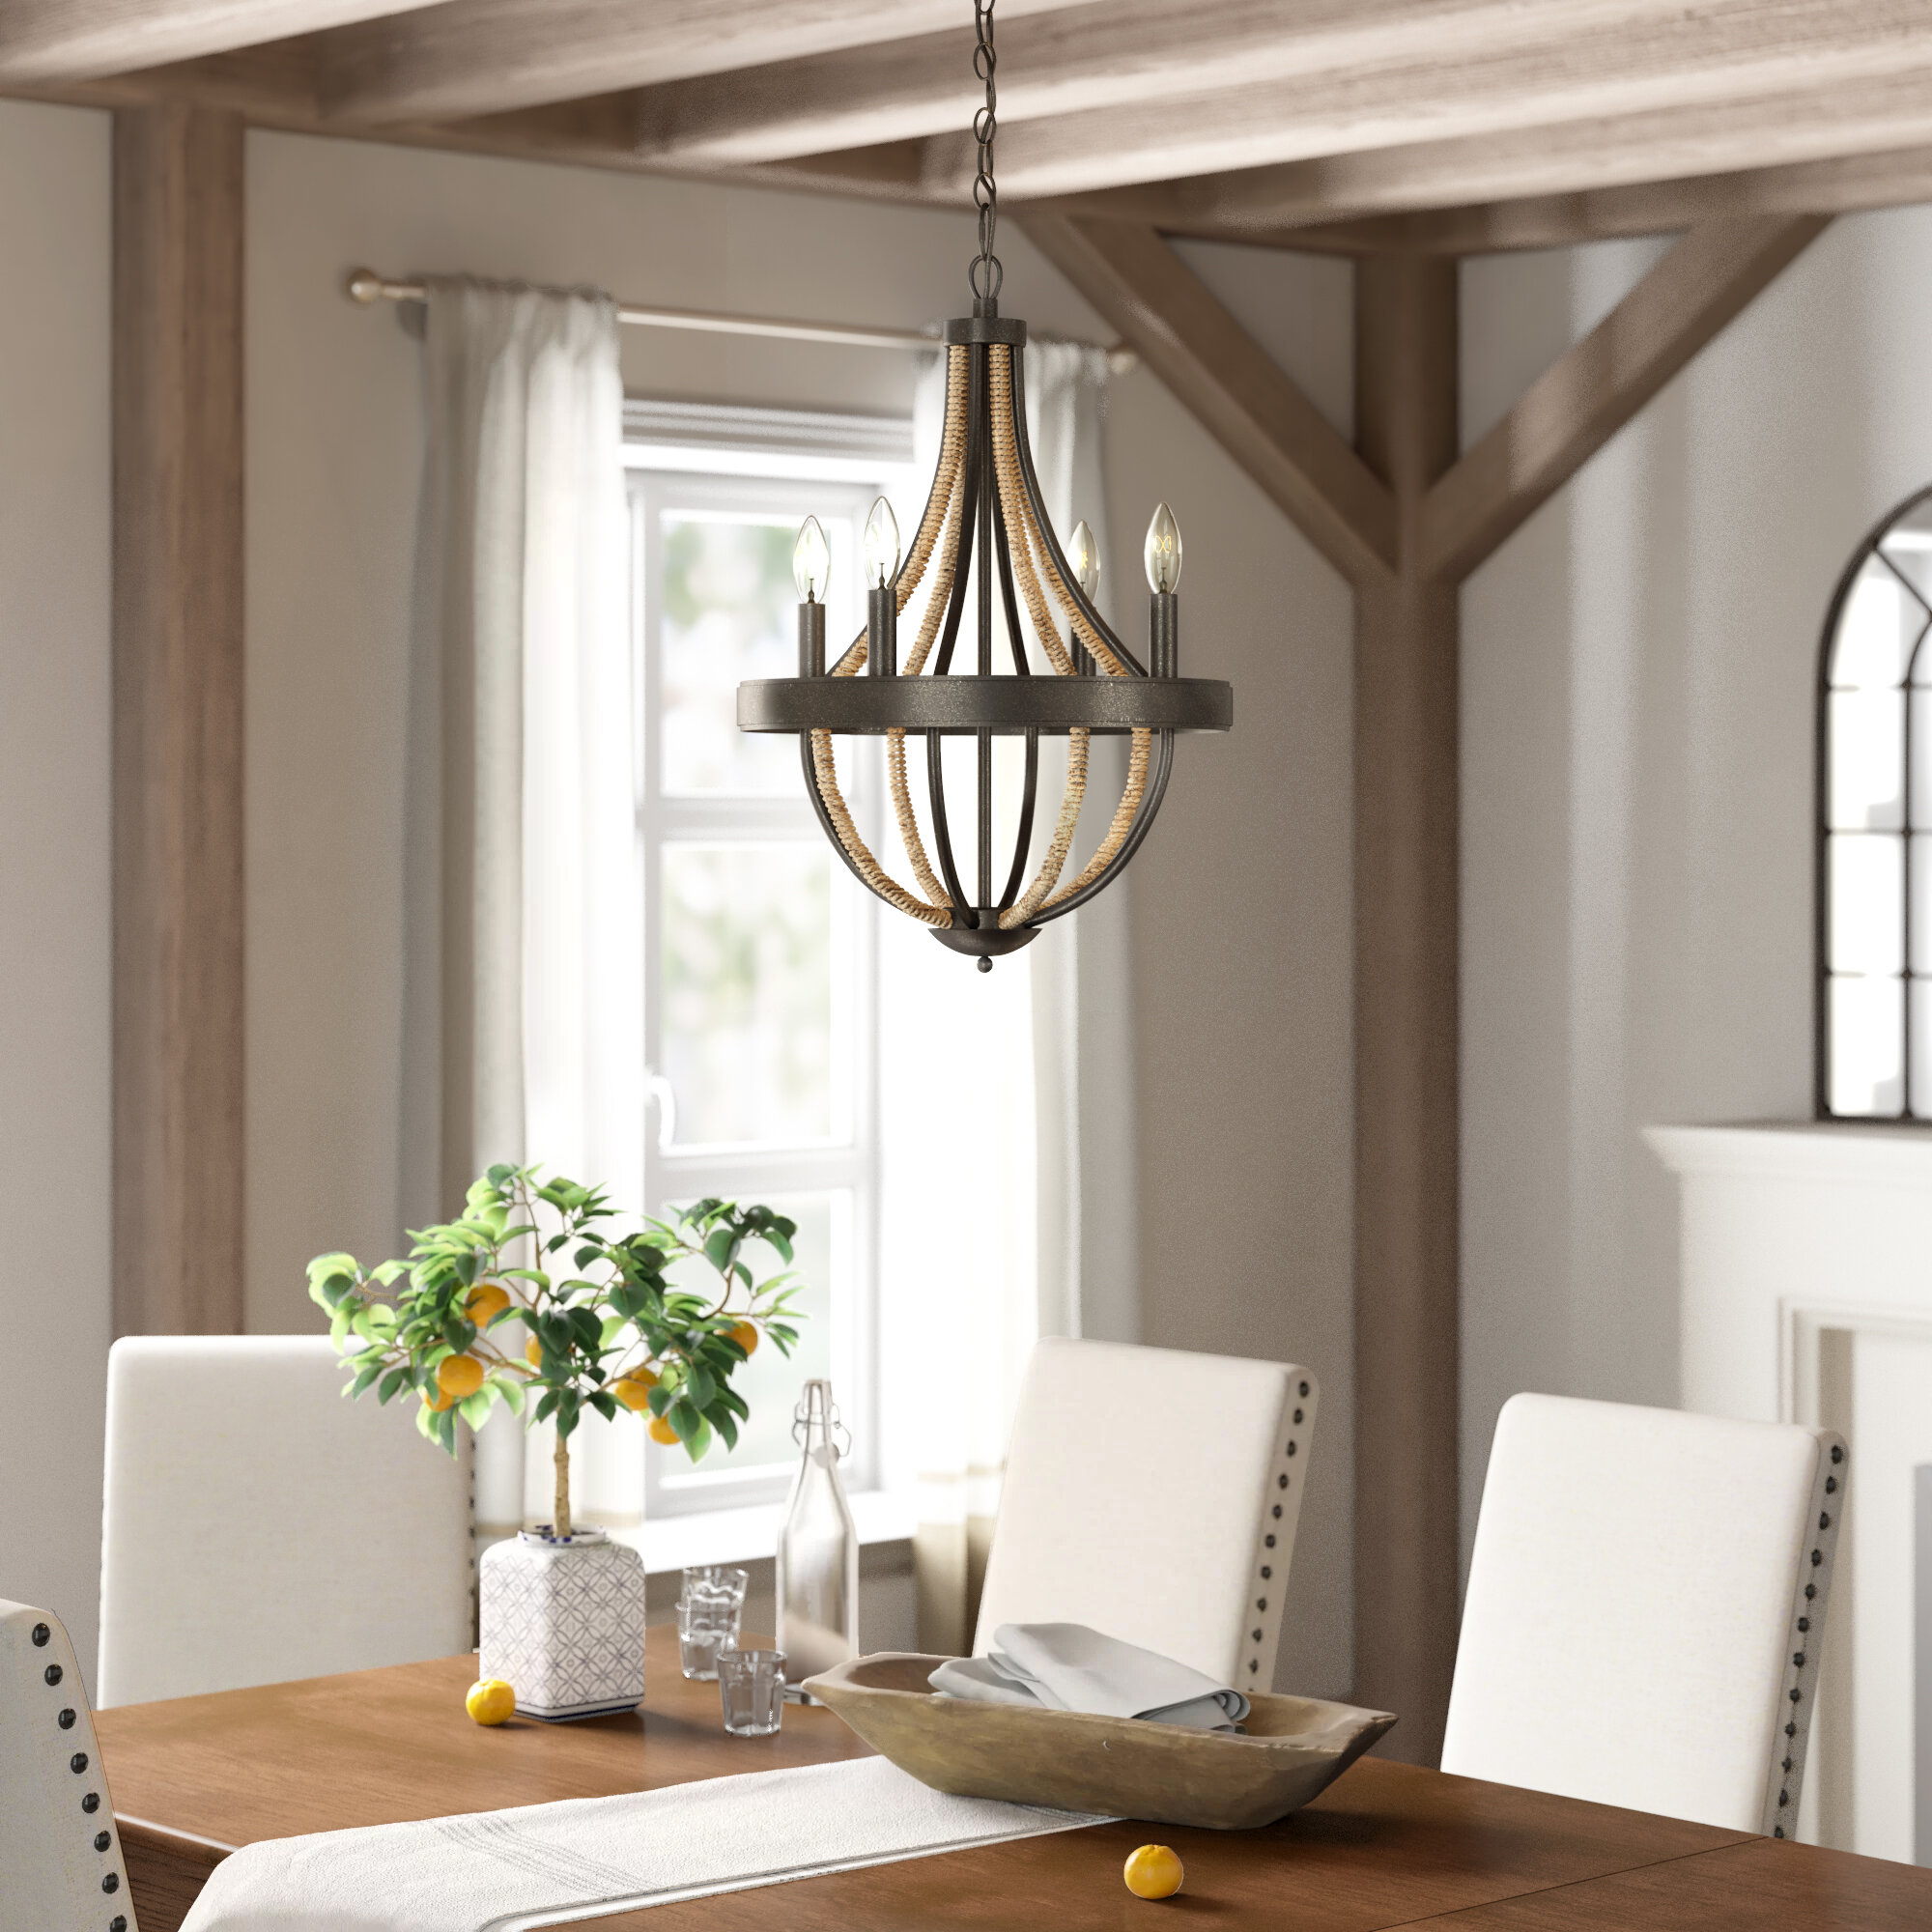 Rustic Chandelier For Dinning Room Clear Crystal Beads Farmhouse Candle Chandelier 4 Light Rustic Wrought Iron Light Fixtures For Dinning Living Room Bedroom 4 X E12 Candelabra Socket Base Lighting Ceiling Fans Tools